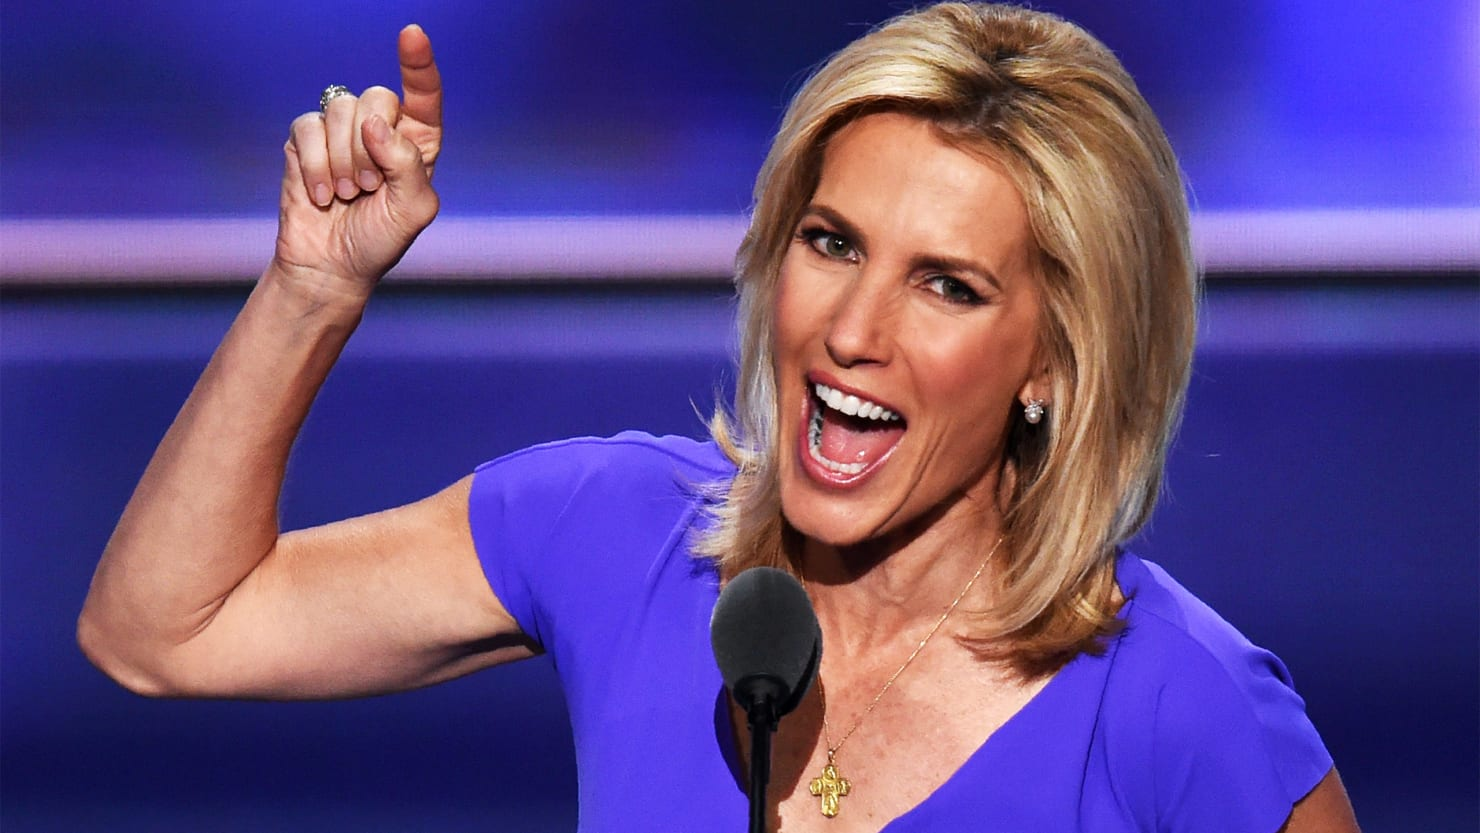 the ceo of laura ingraham's lifezette won't stop talking about his